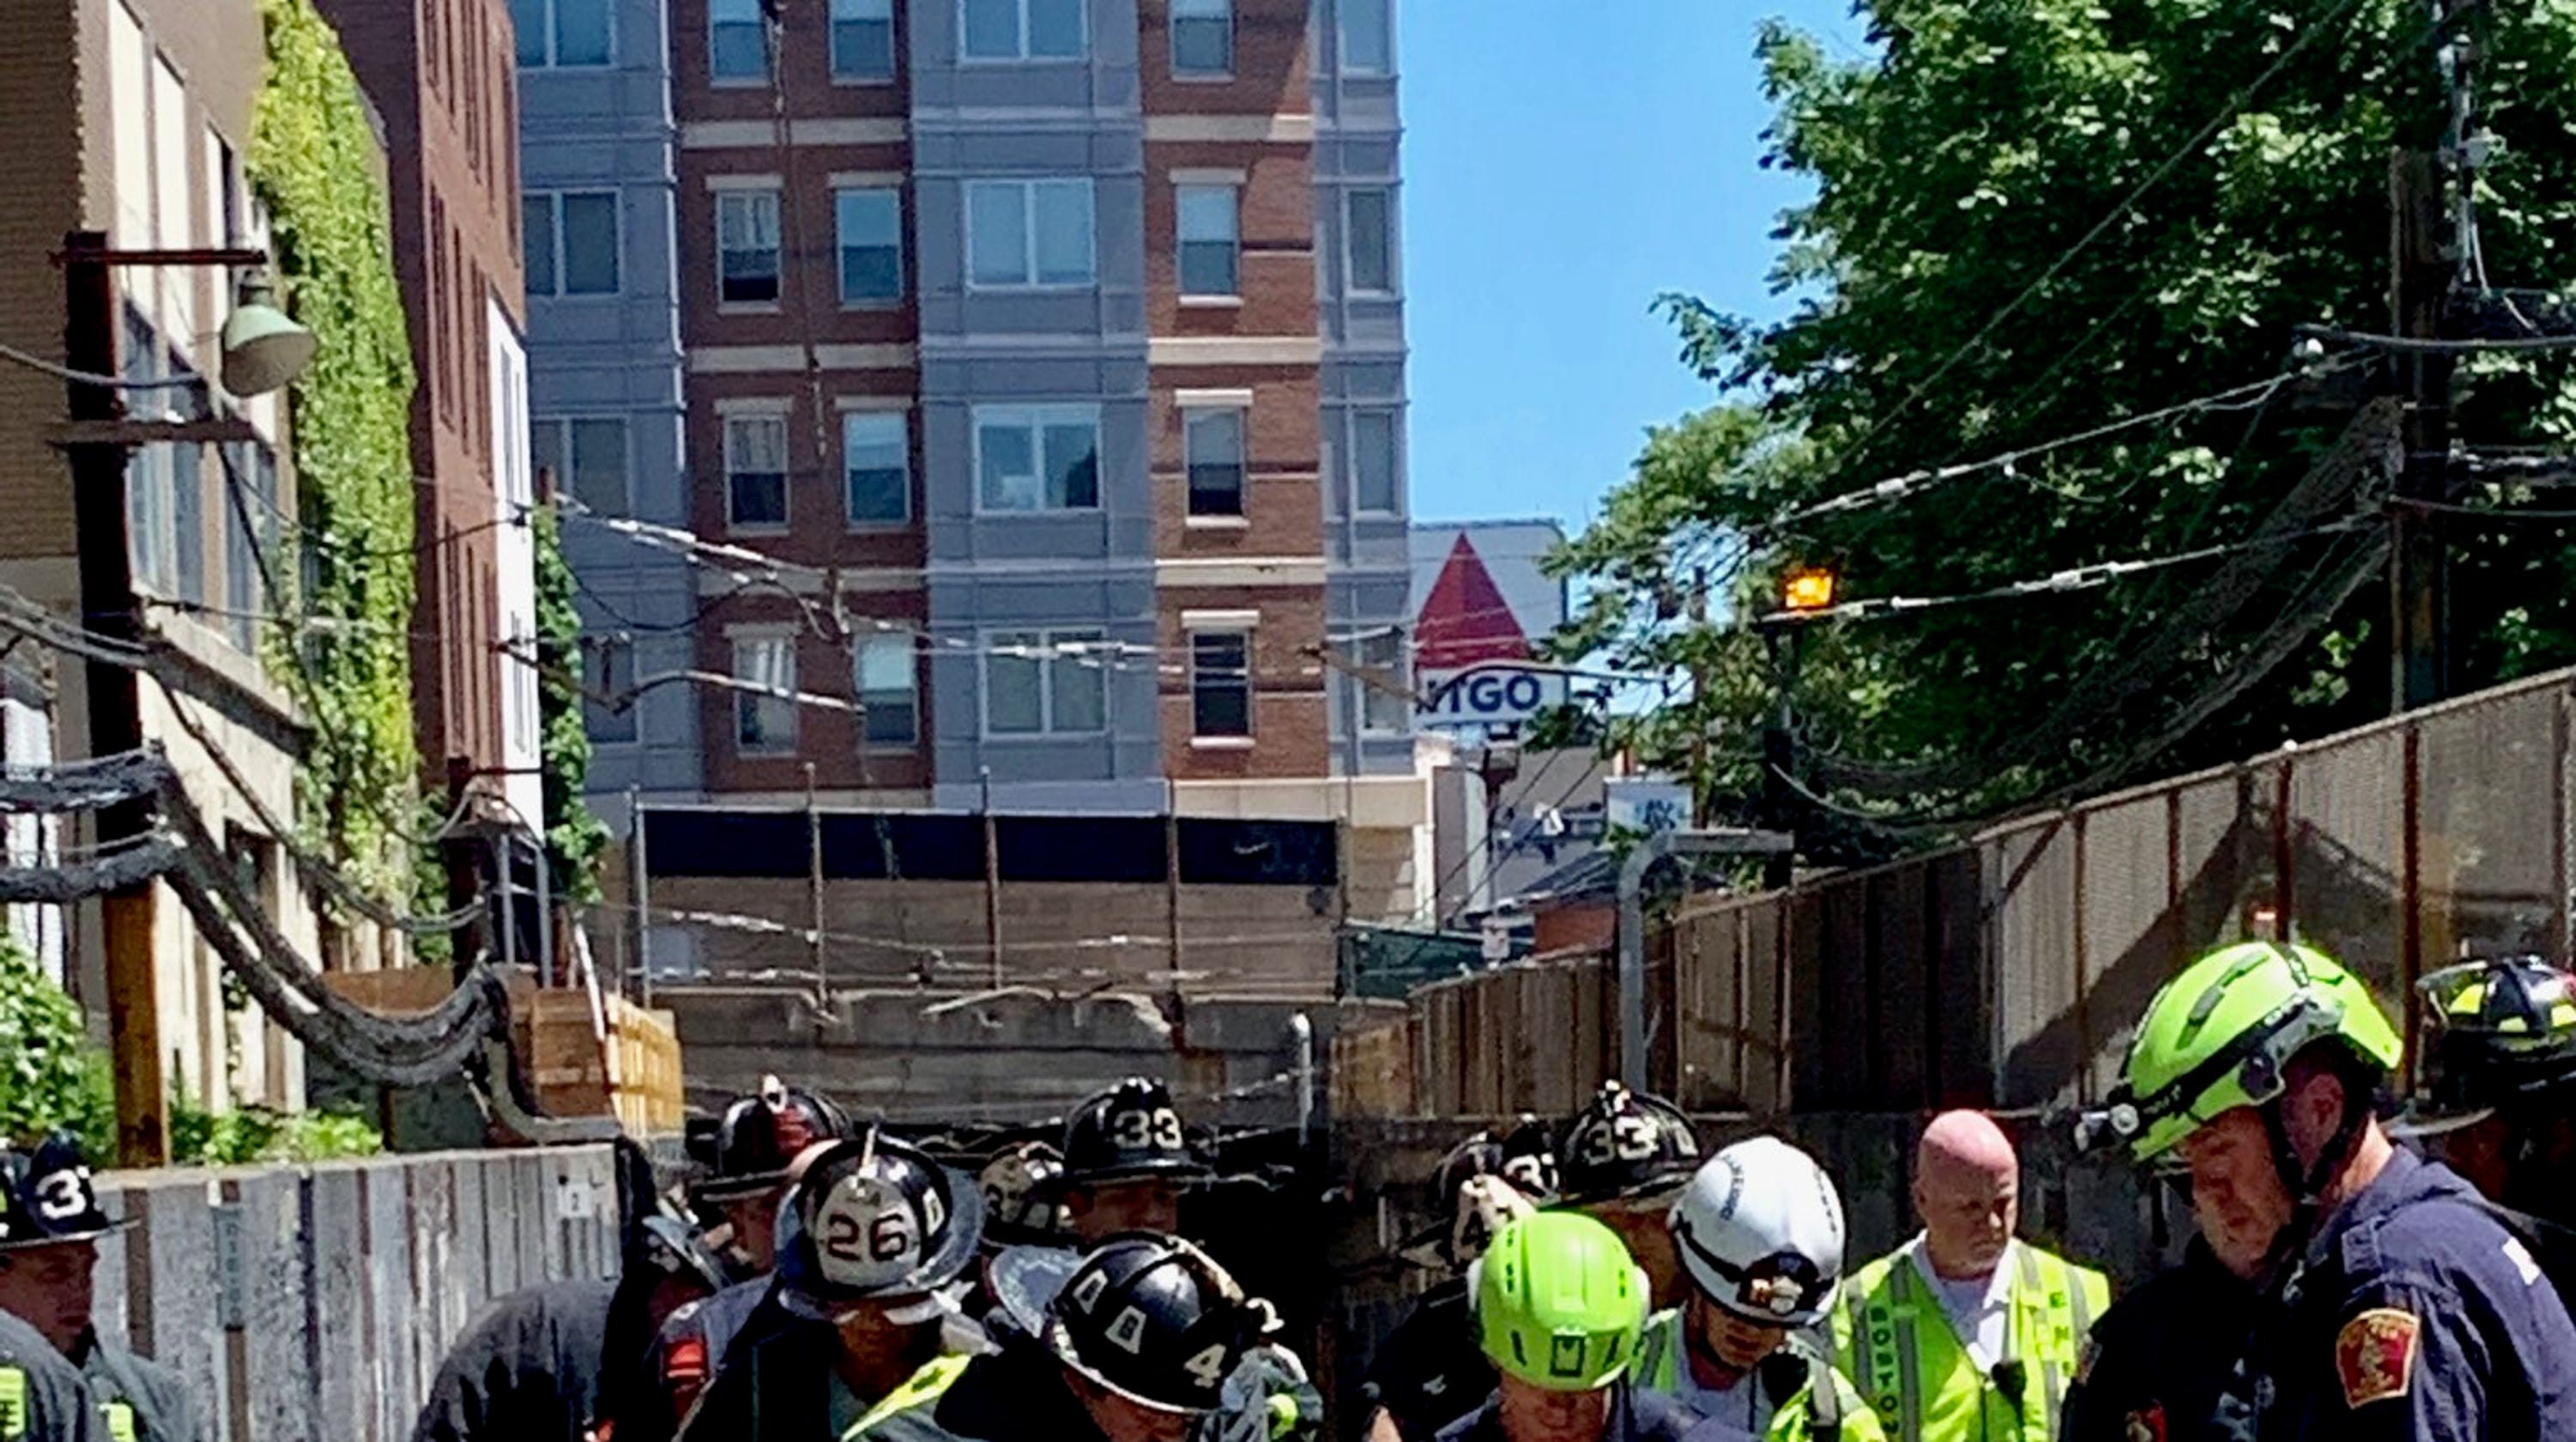 Boston train derails near Fenway Park before Red Sox game, sending